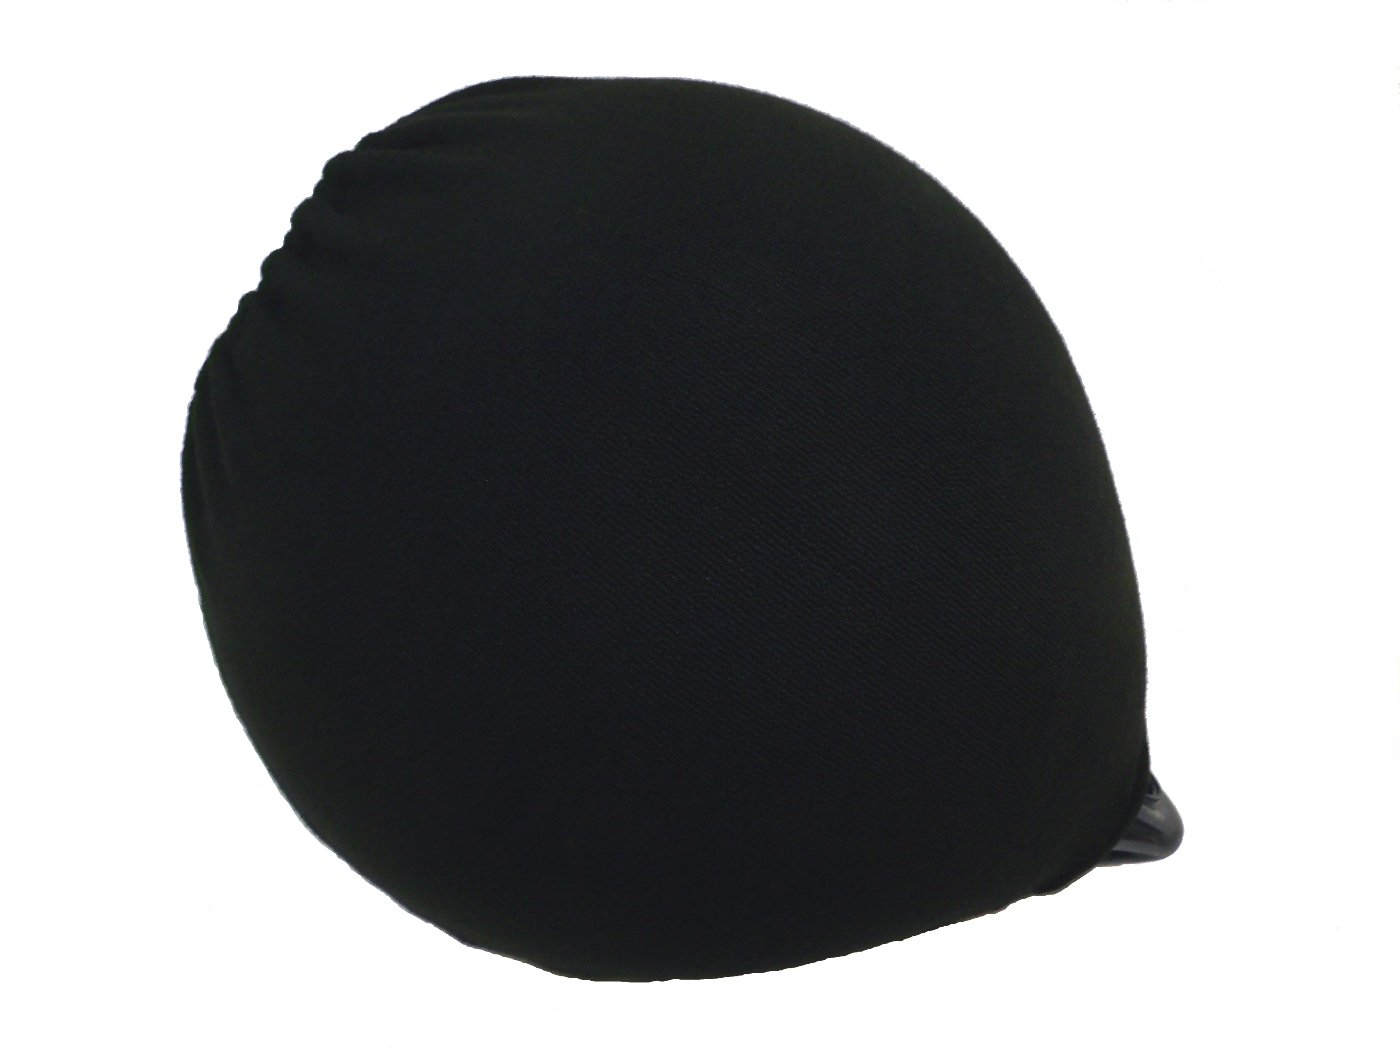 Fenda-Sox Fender Covers for A-Series Ball Fenders (Black, A3/FR3 (18'' Ball)) by Fenda-Sox Fender Covers